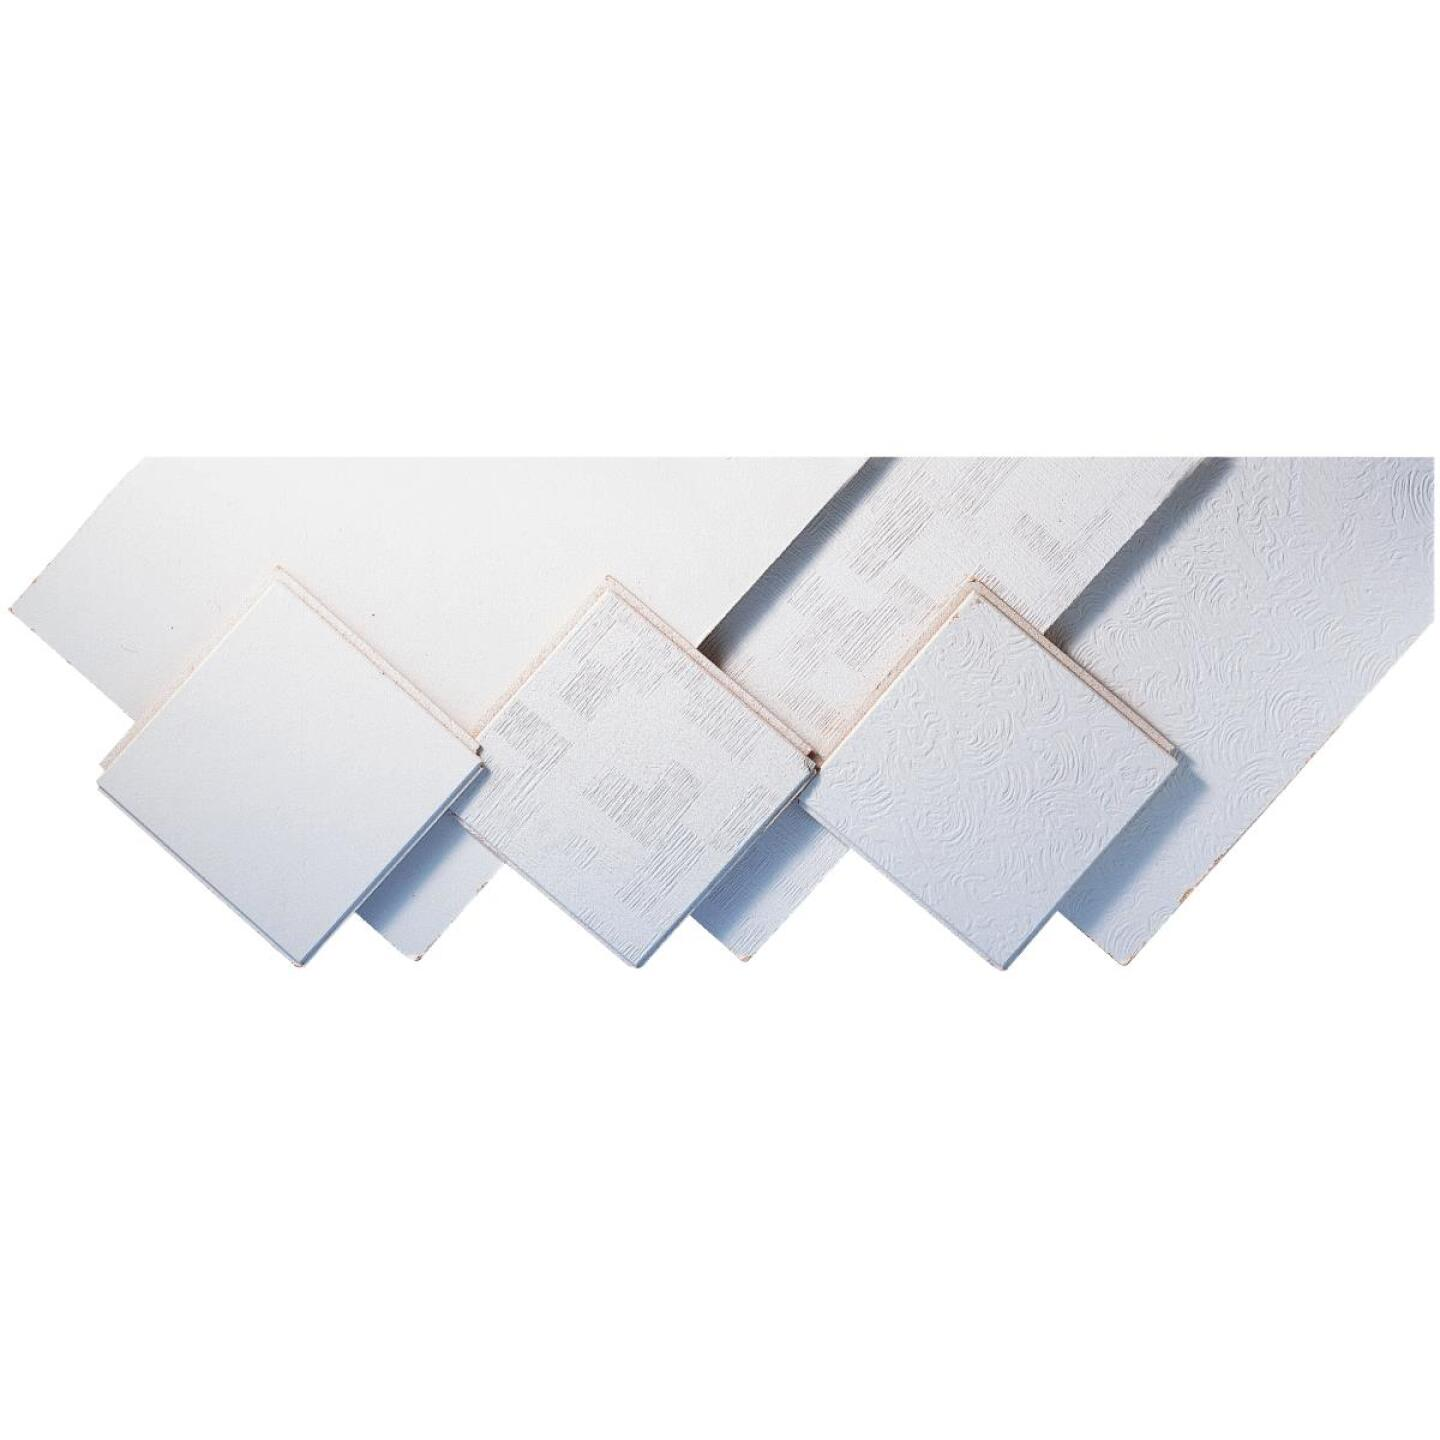 BP Silencio Chablis 12 In. x 12 In. White Wood Fiber Nonsuspended Ceiling Tile (32-Count) Image 2